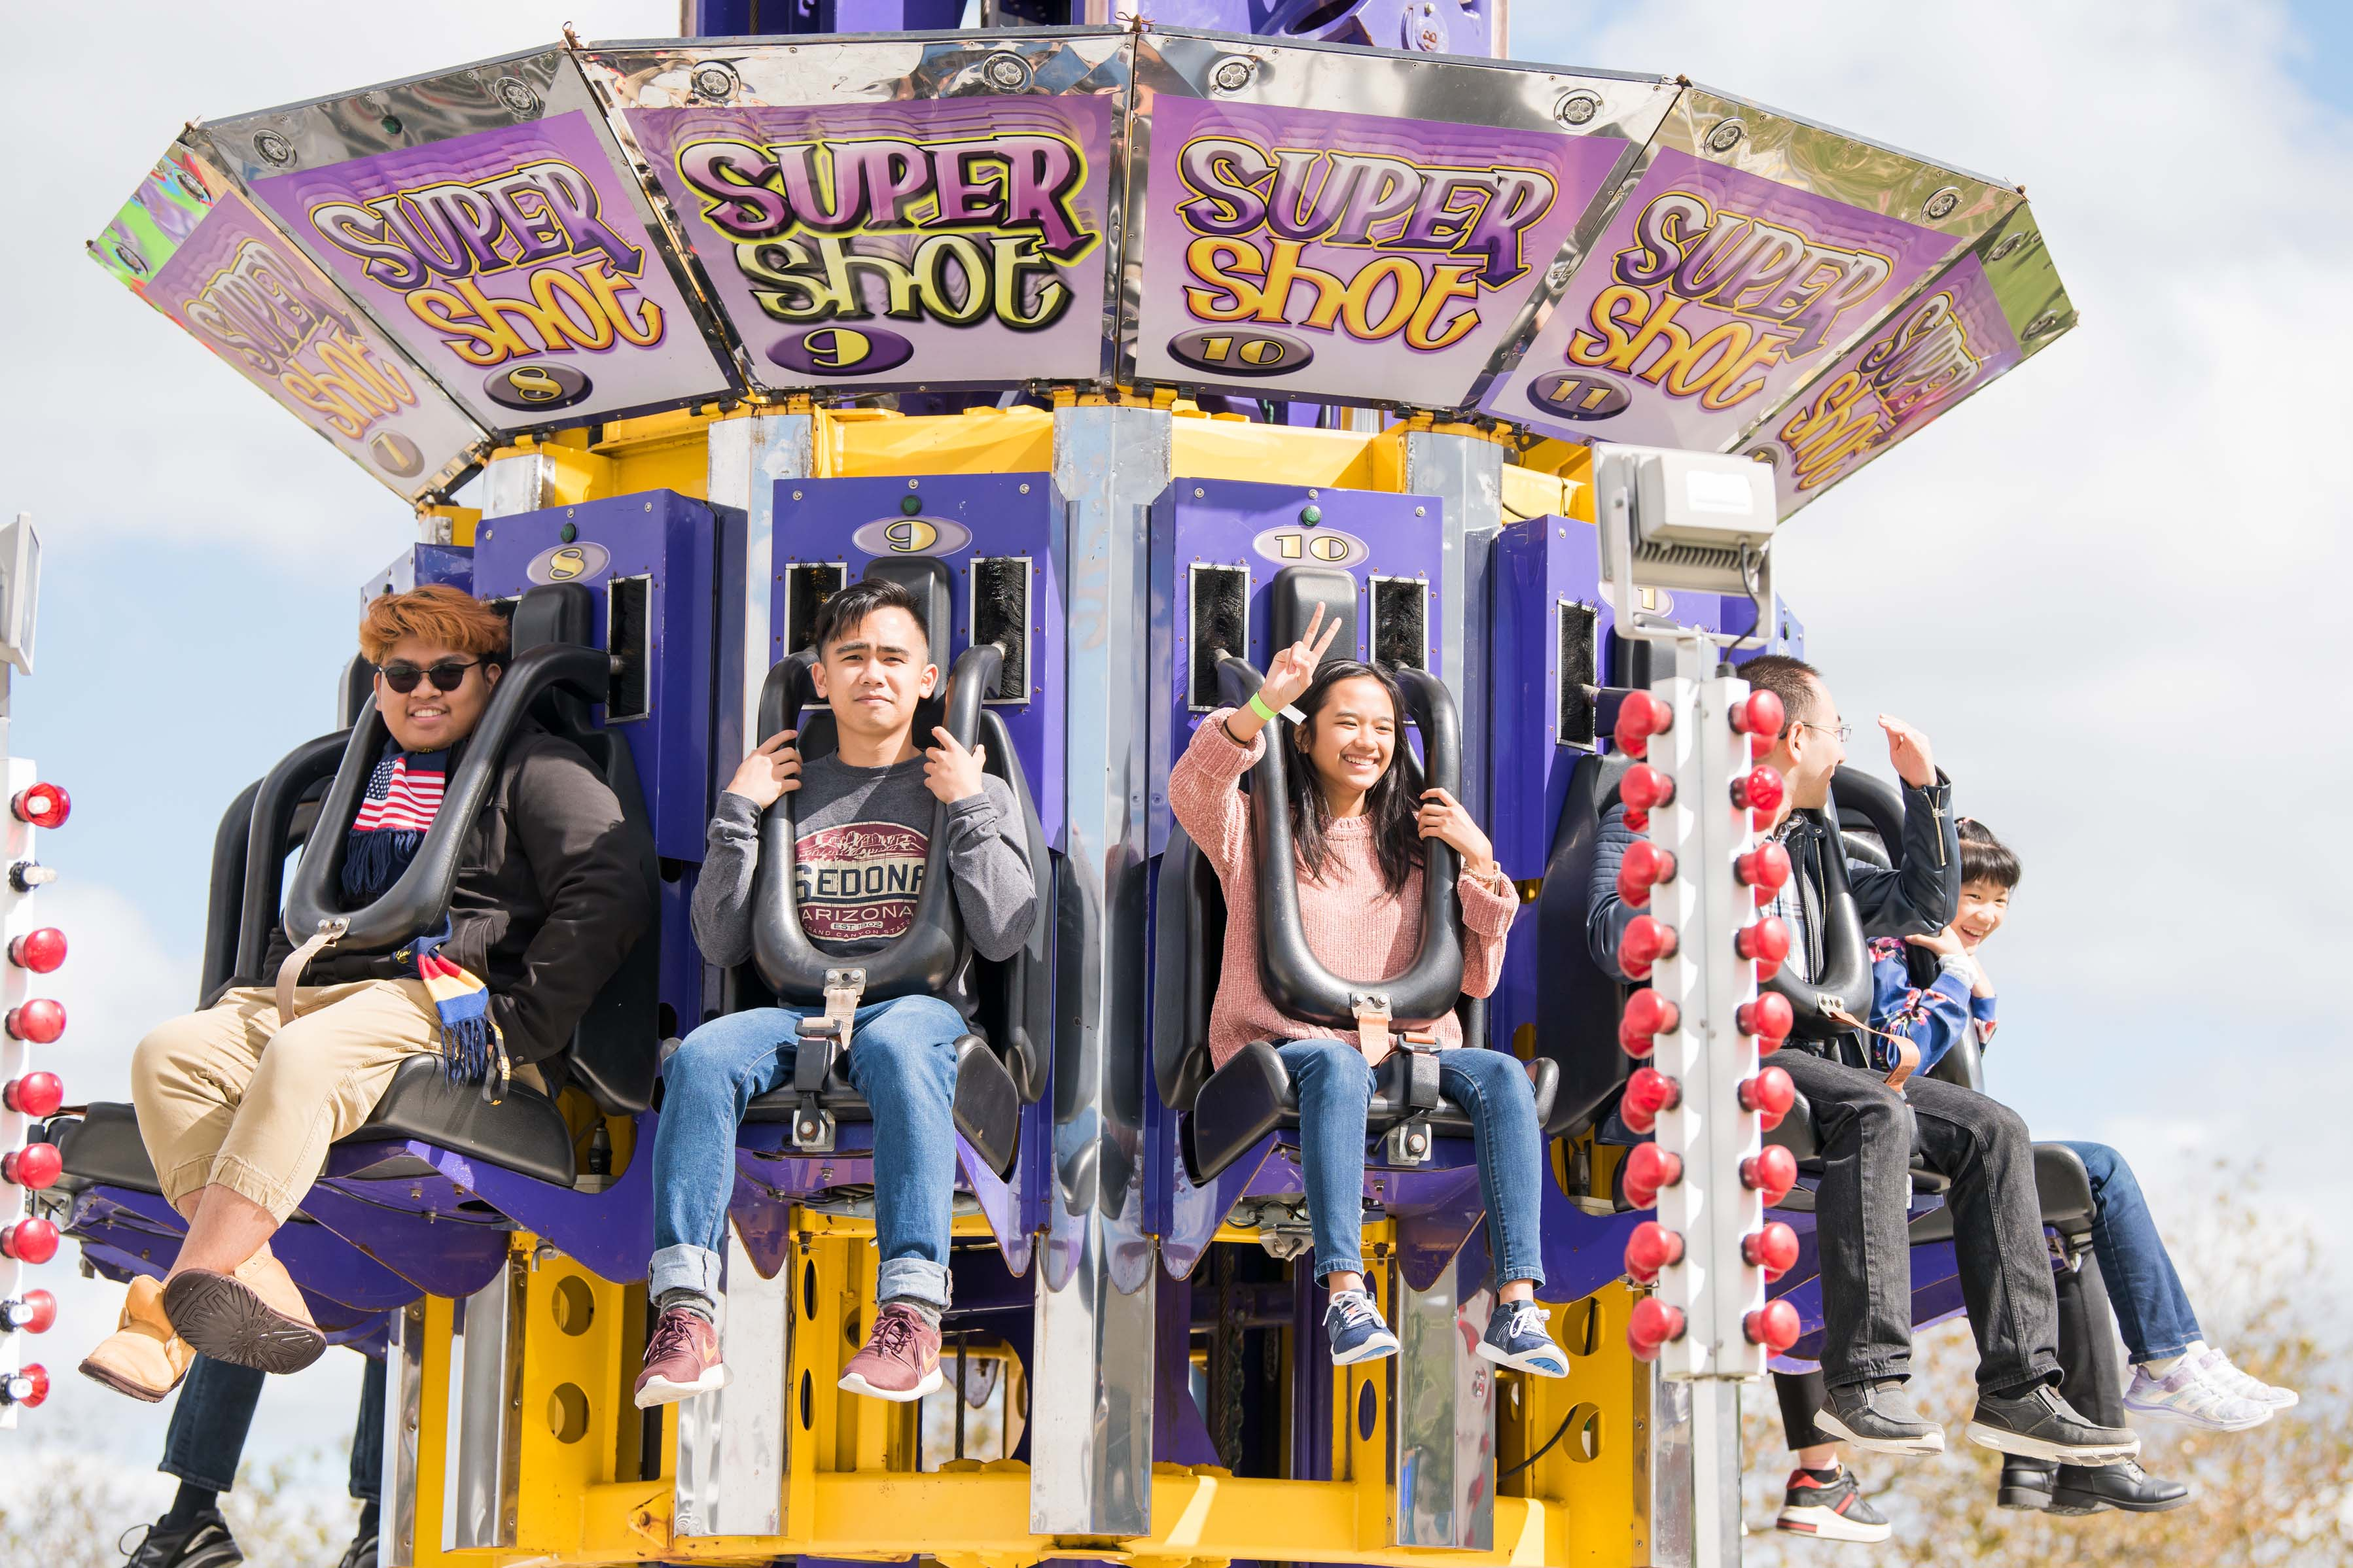 Students pose on super shot ride